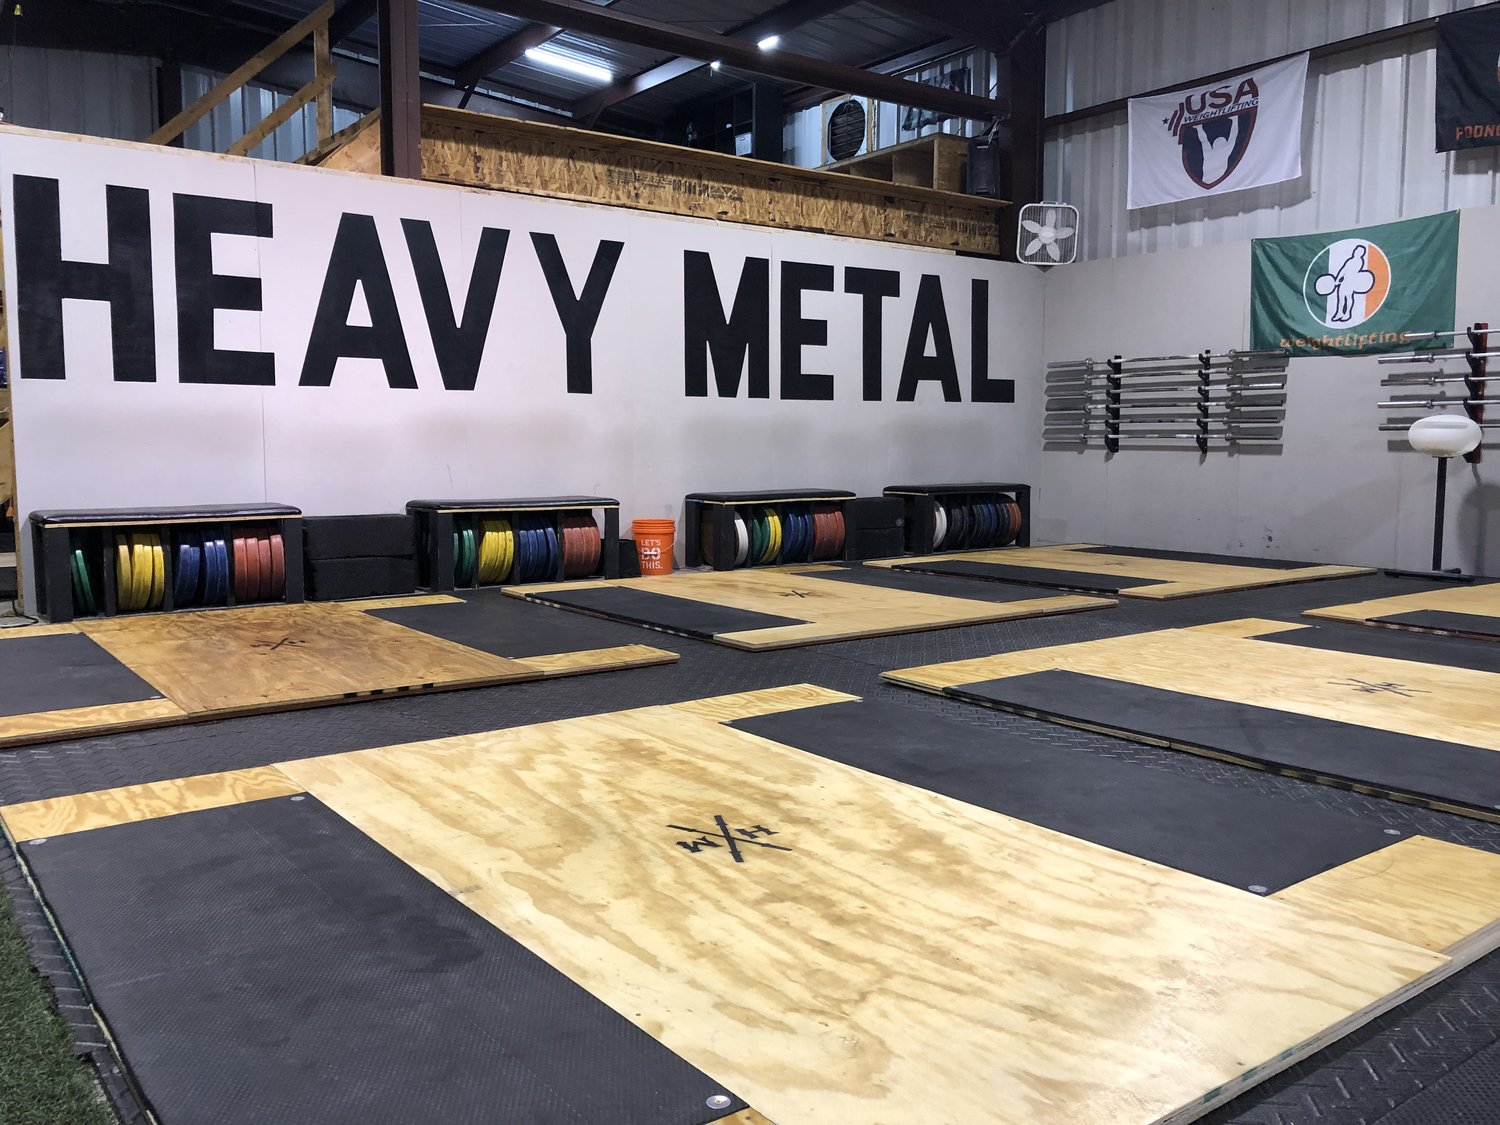 Diy Weightlifting Platform Hmbc